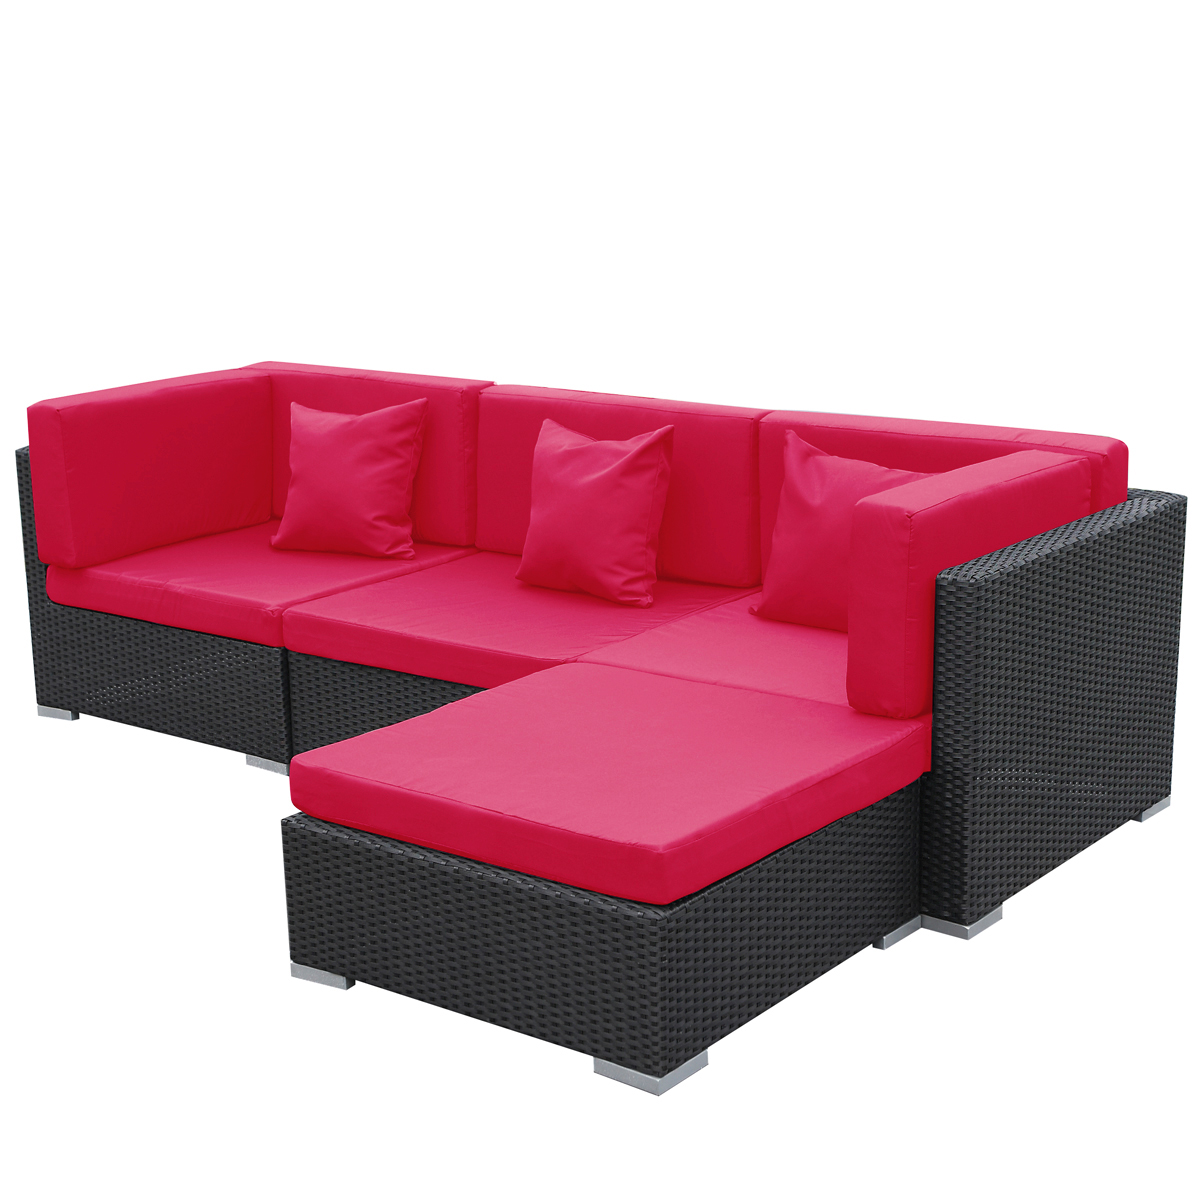 gartenm bel gartenlounge polyrattan sofa bergen rot. Black Bedroom Furniture Sets. Home Design Ideas